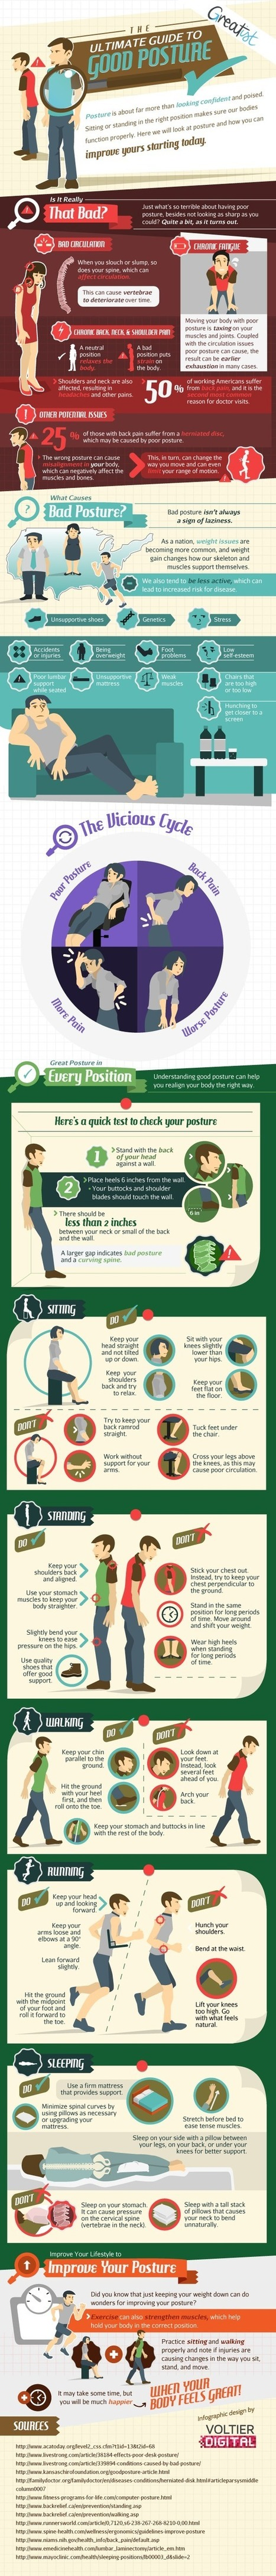 Everything You Need to Know About Good Posture - Infographic | Health and Wellness Digest | Scoop.it